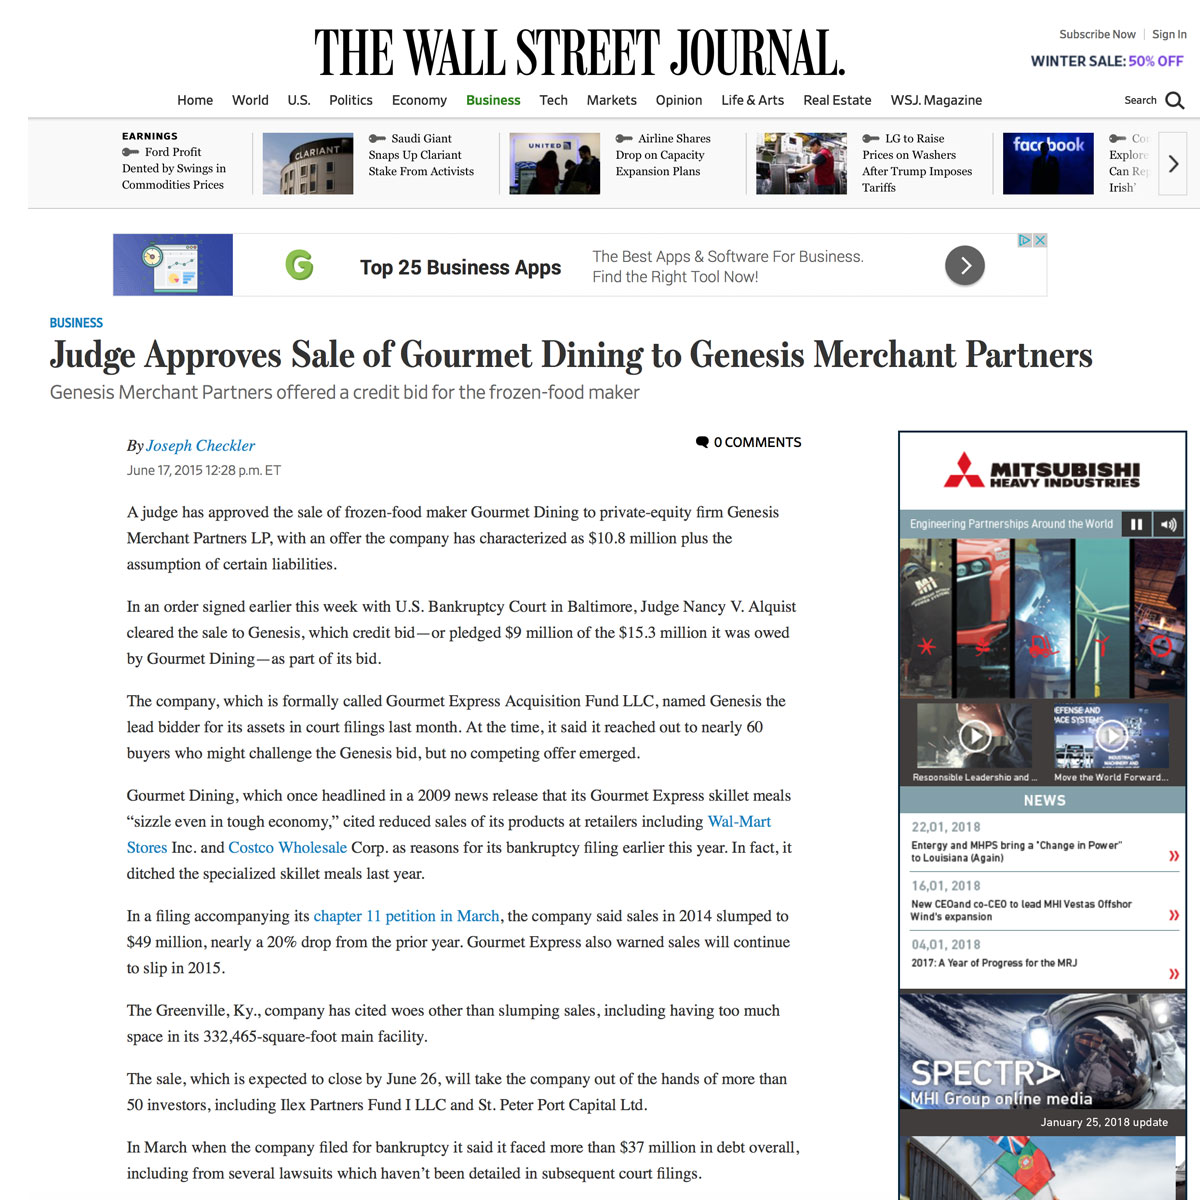 Judge Approves Sale of Gourmet Dining to Genesis Merchant Partners - Martin Sands